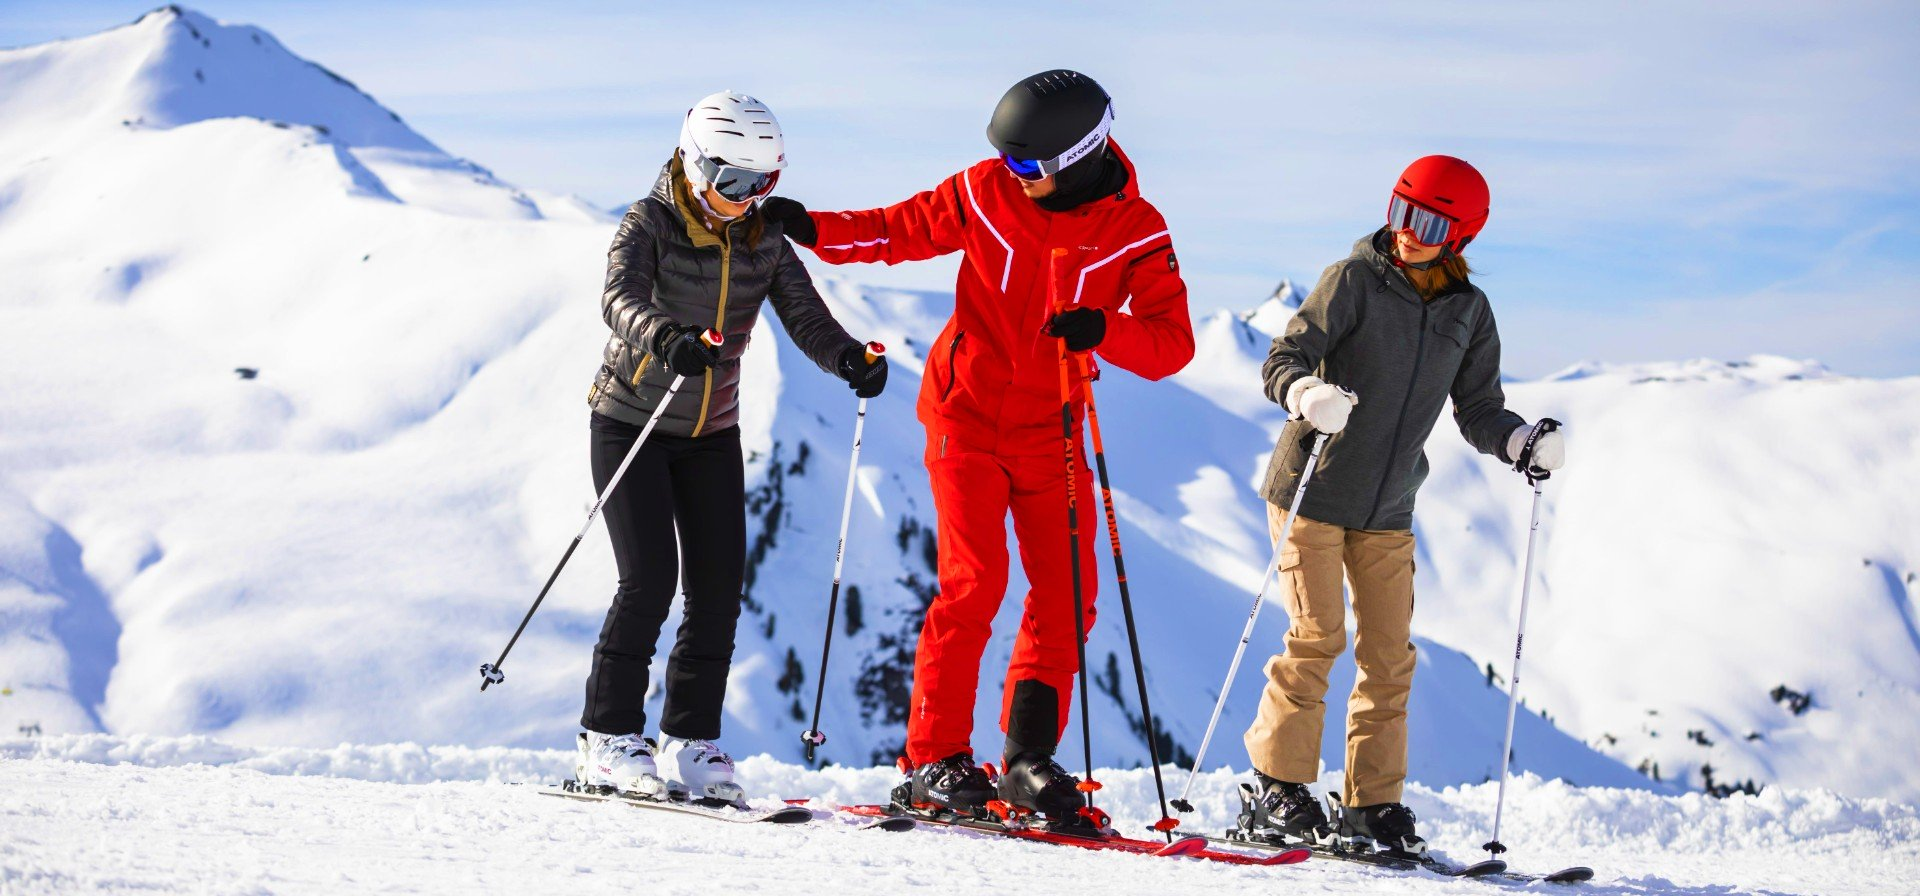 A ski instructor is giving ski lessons to two girls.